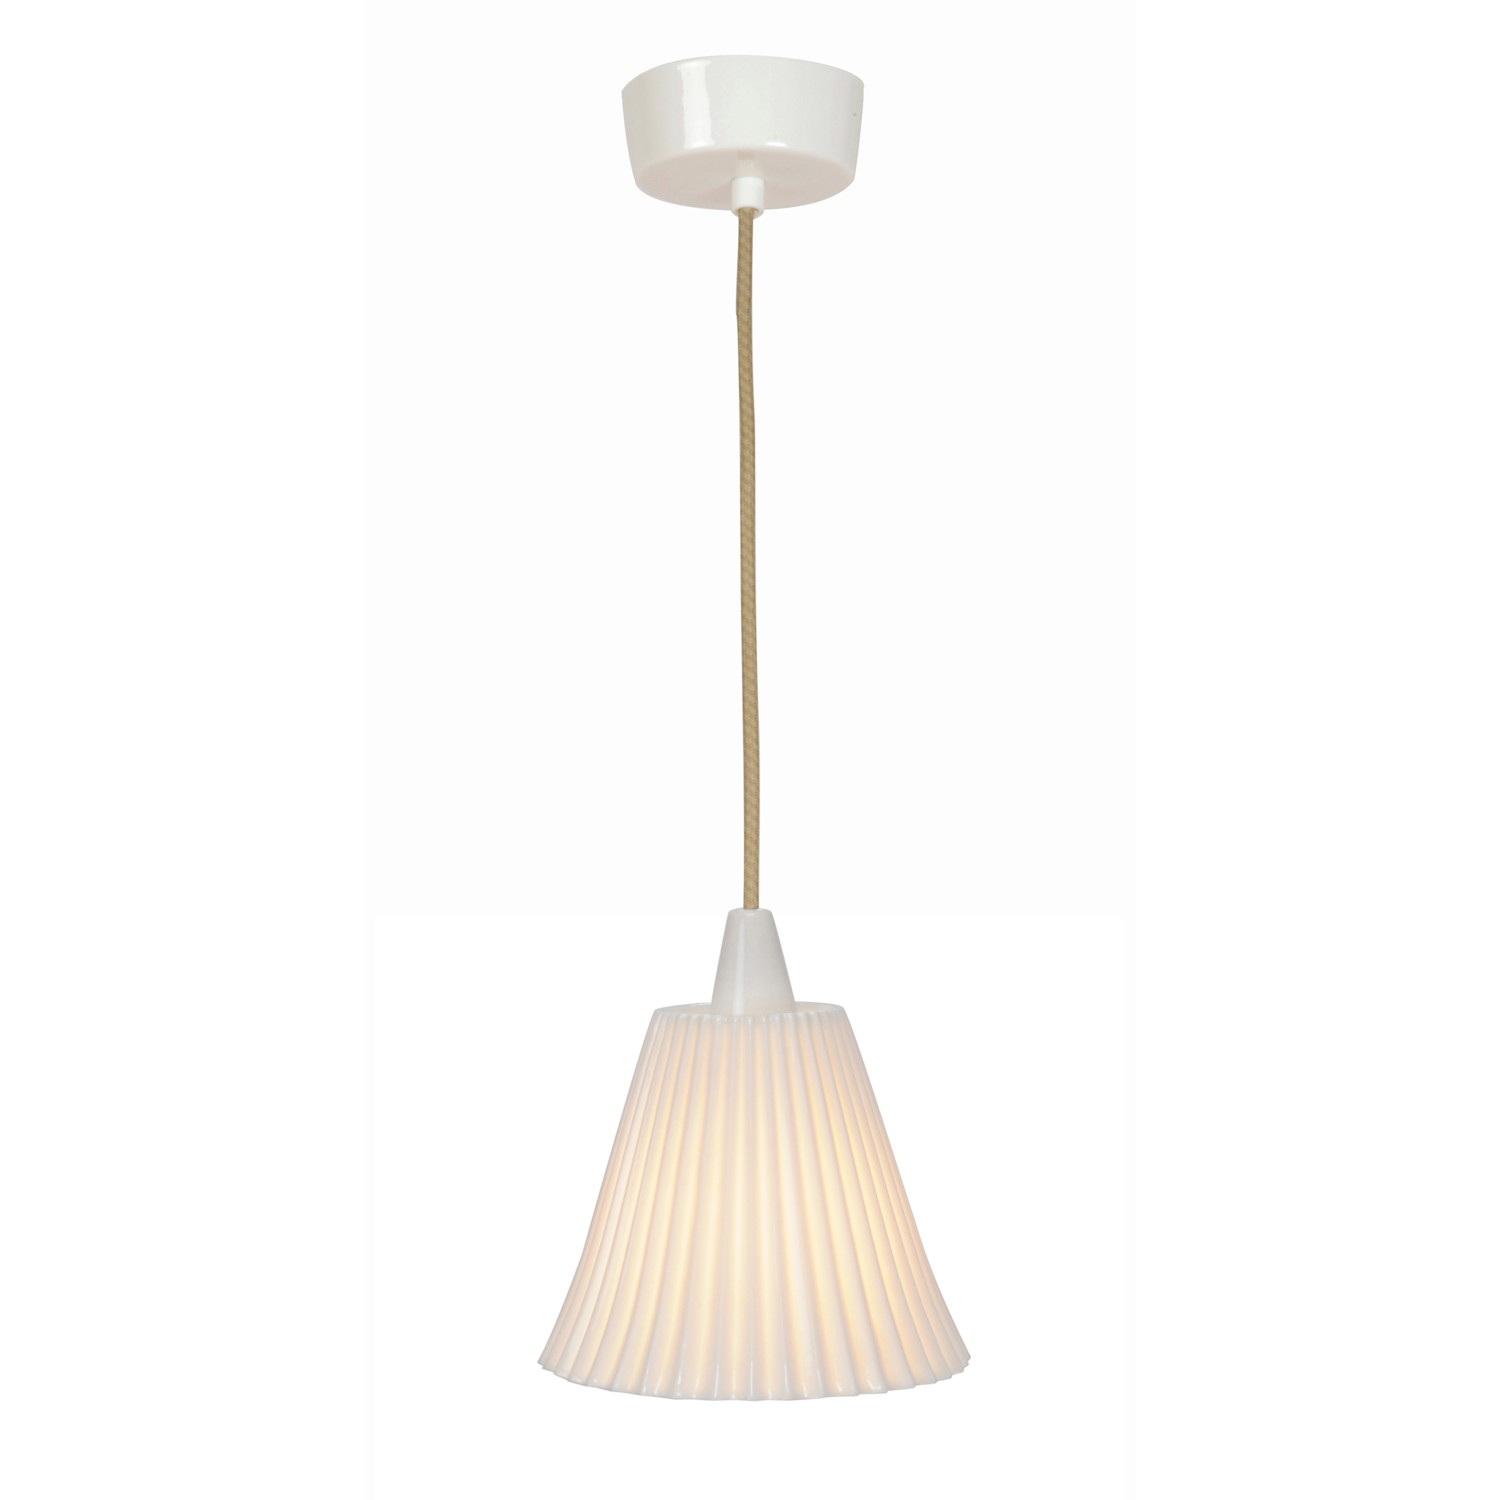 Hector Pleat Pendant Light Large